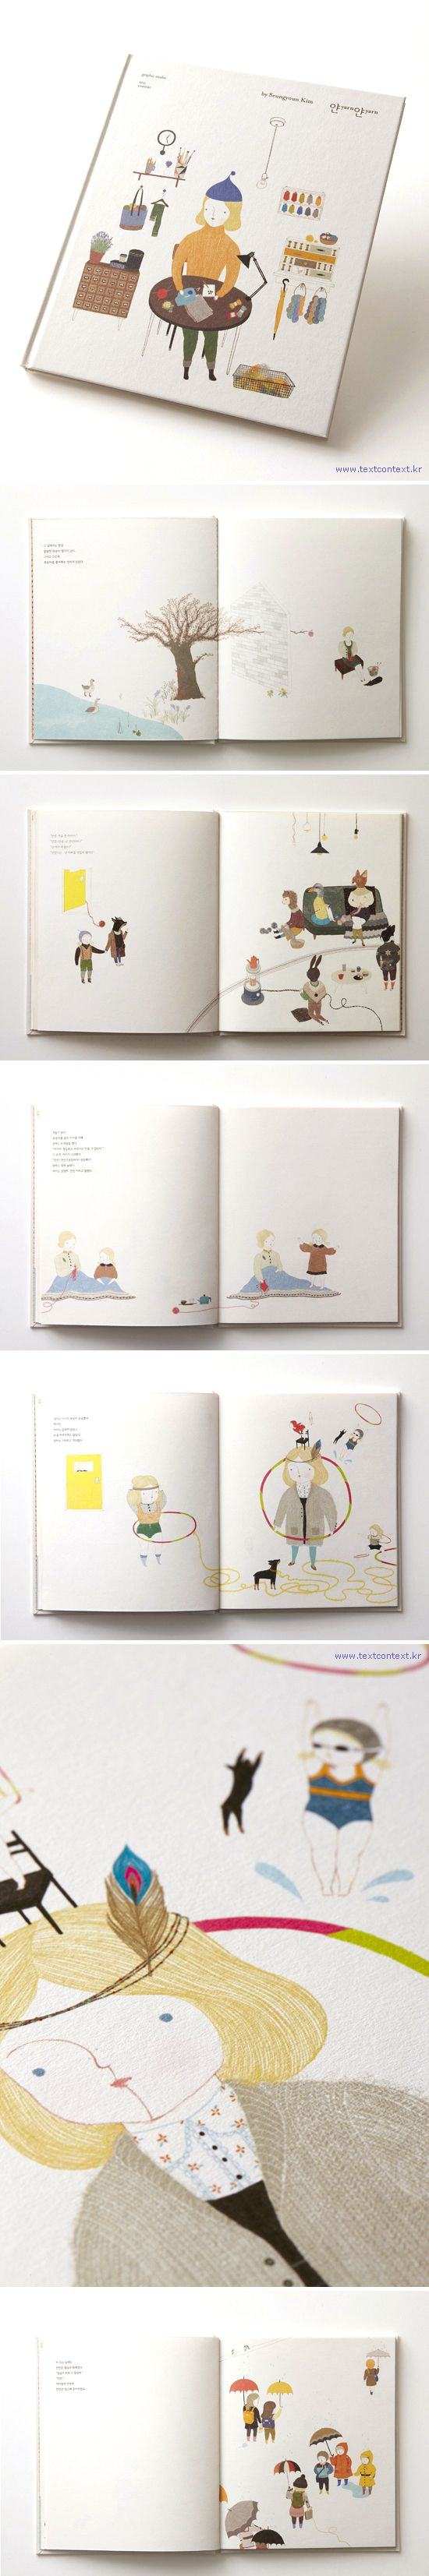 yarnyarn_ picture book by Seungyoun Kim, via Behance